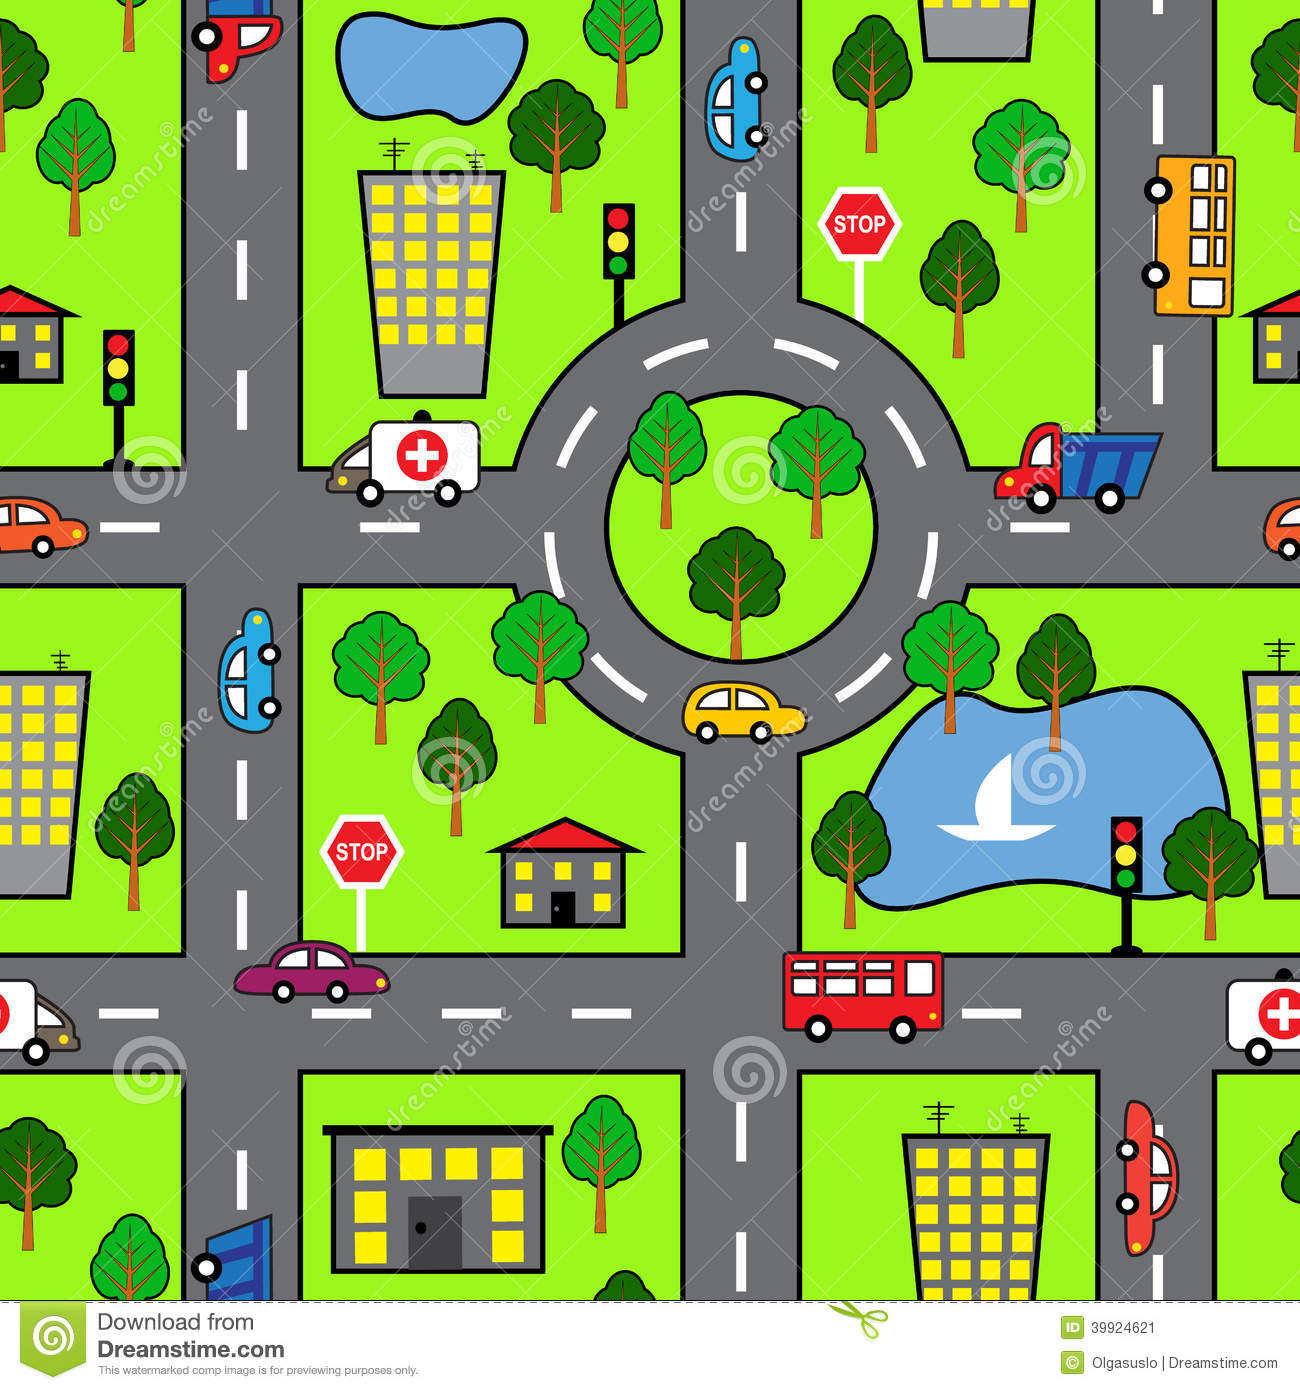 City road map clipart jpg free library City road map clipart - ClipartFest jpg free library